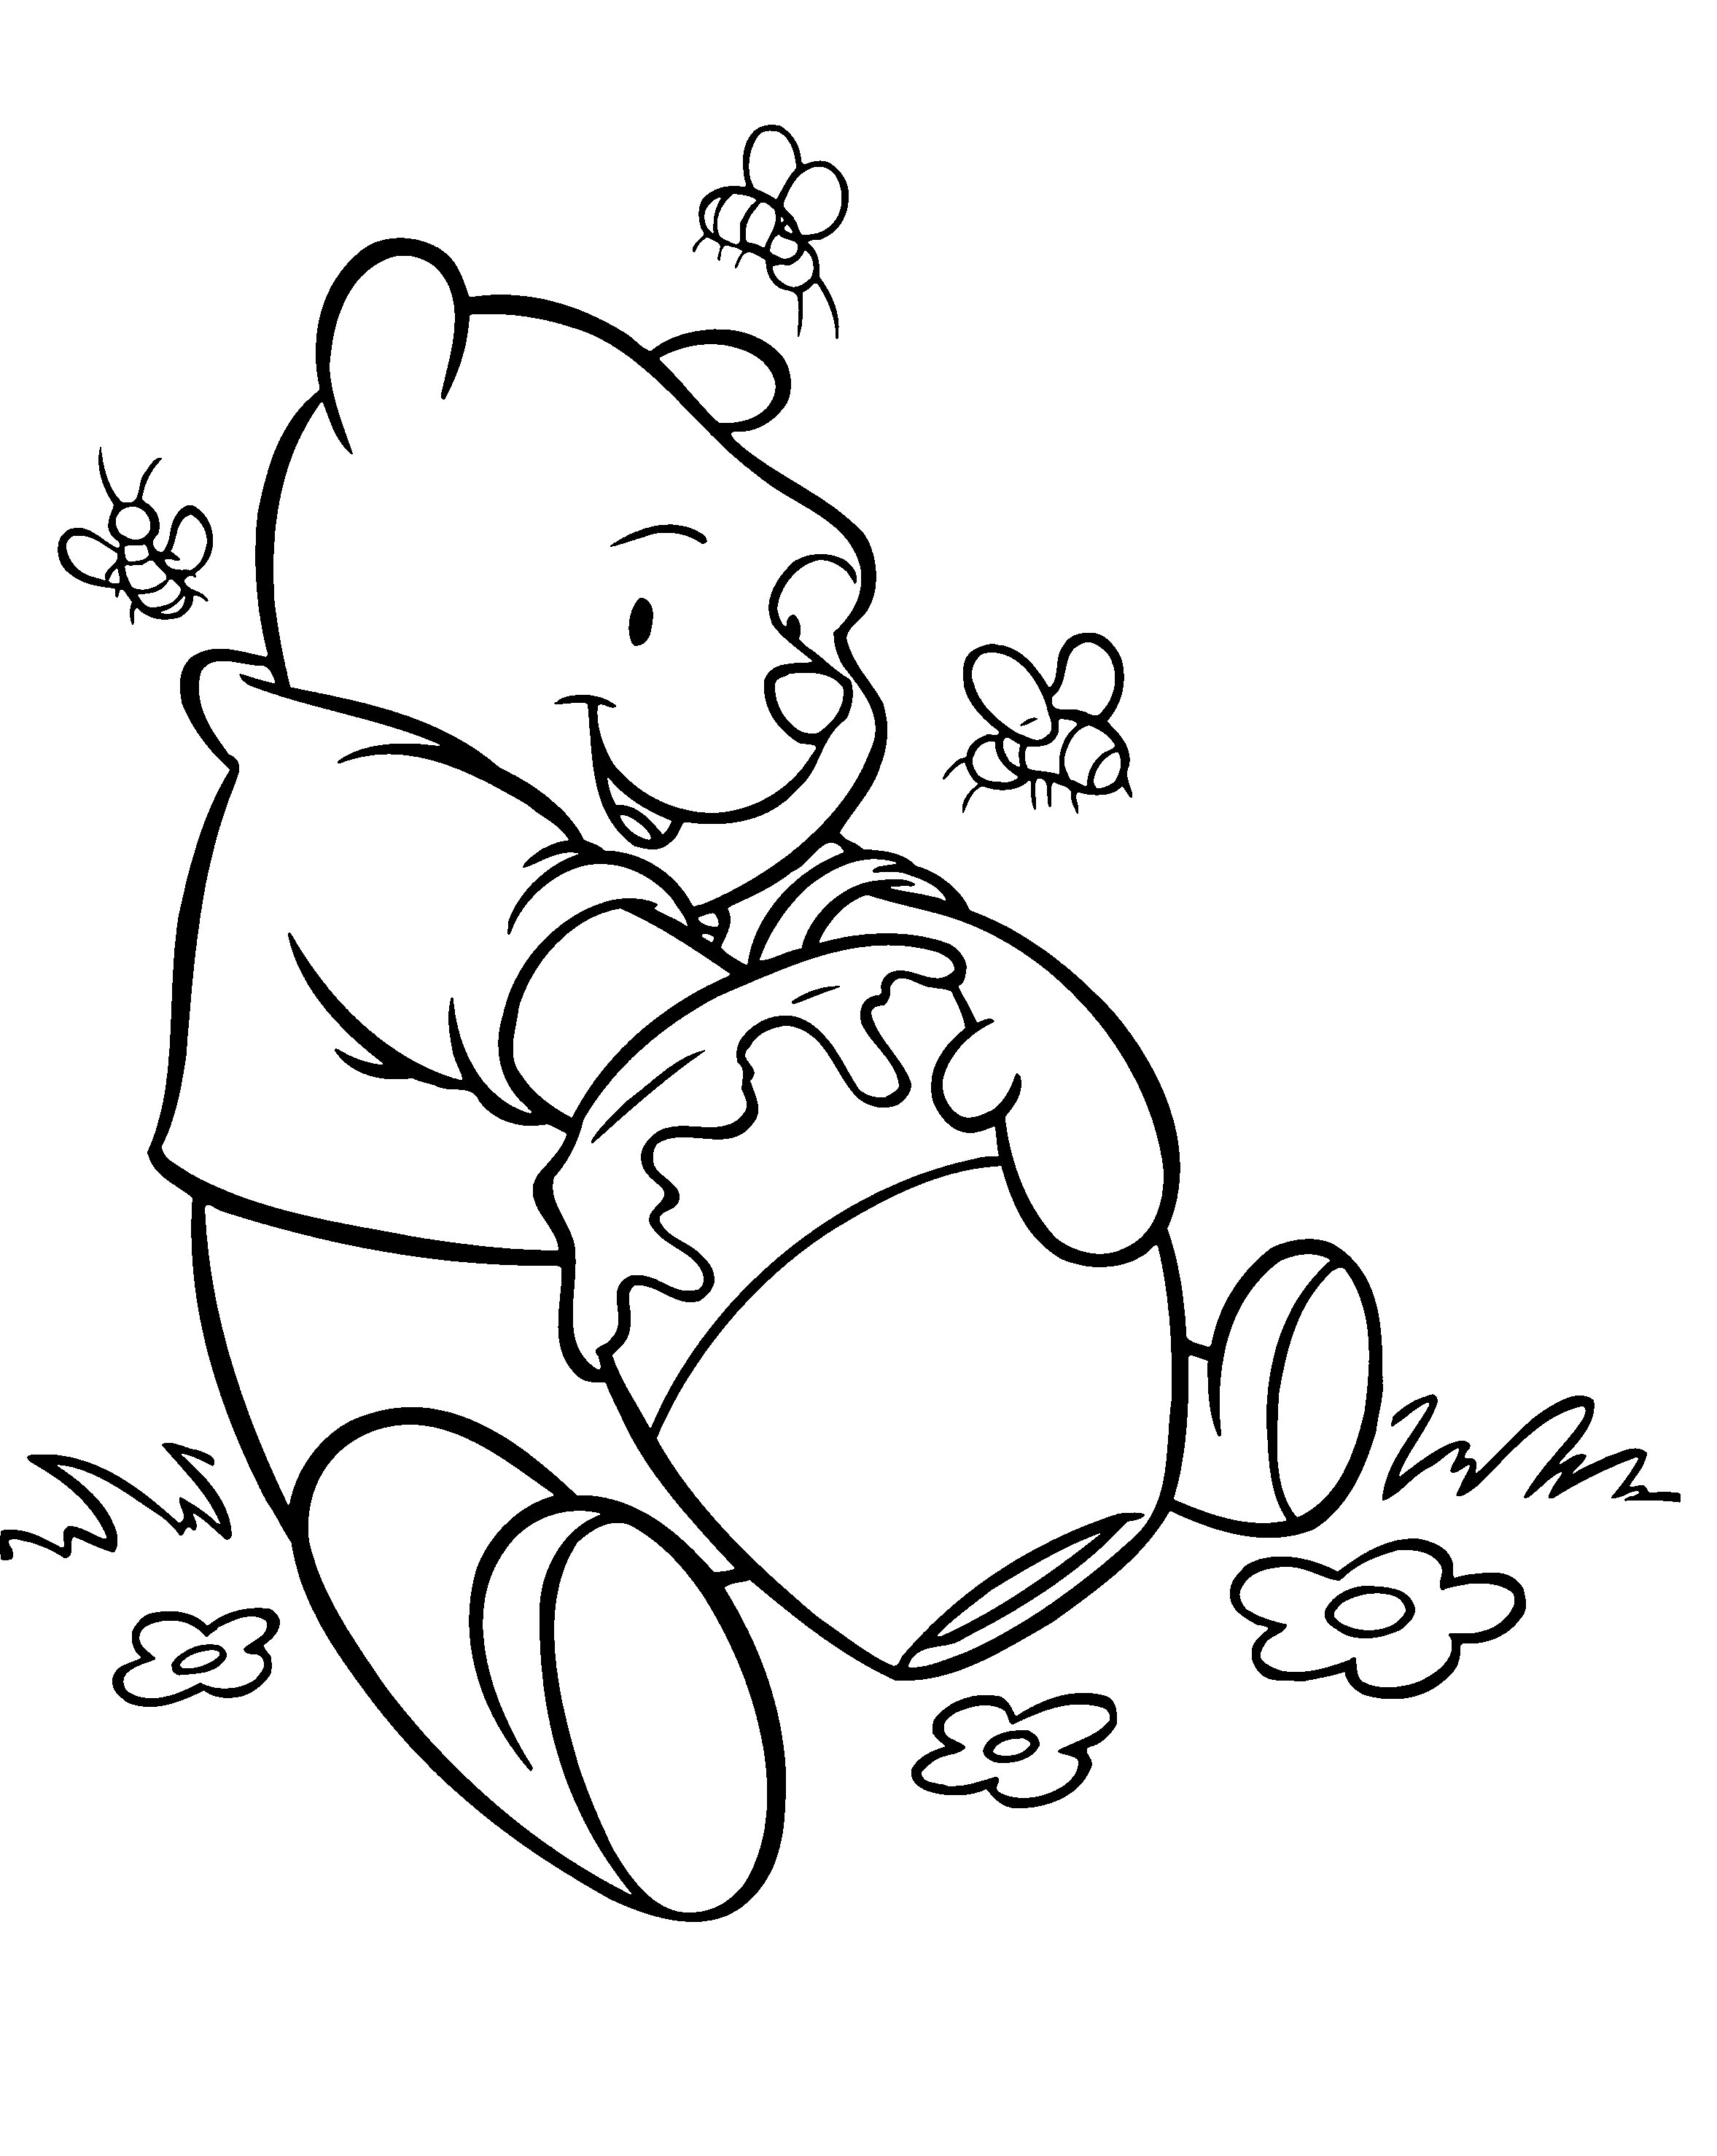 2355x2957 How To Draw Winnie The Pooh Bear From Winnie The Pooh Video